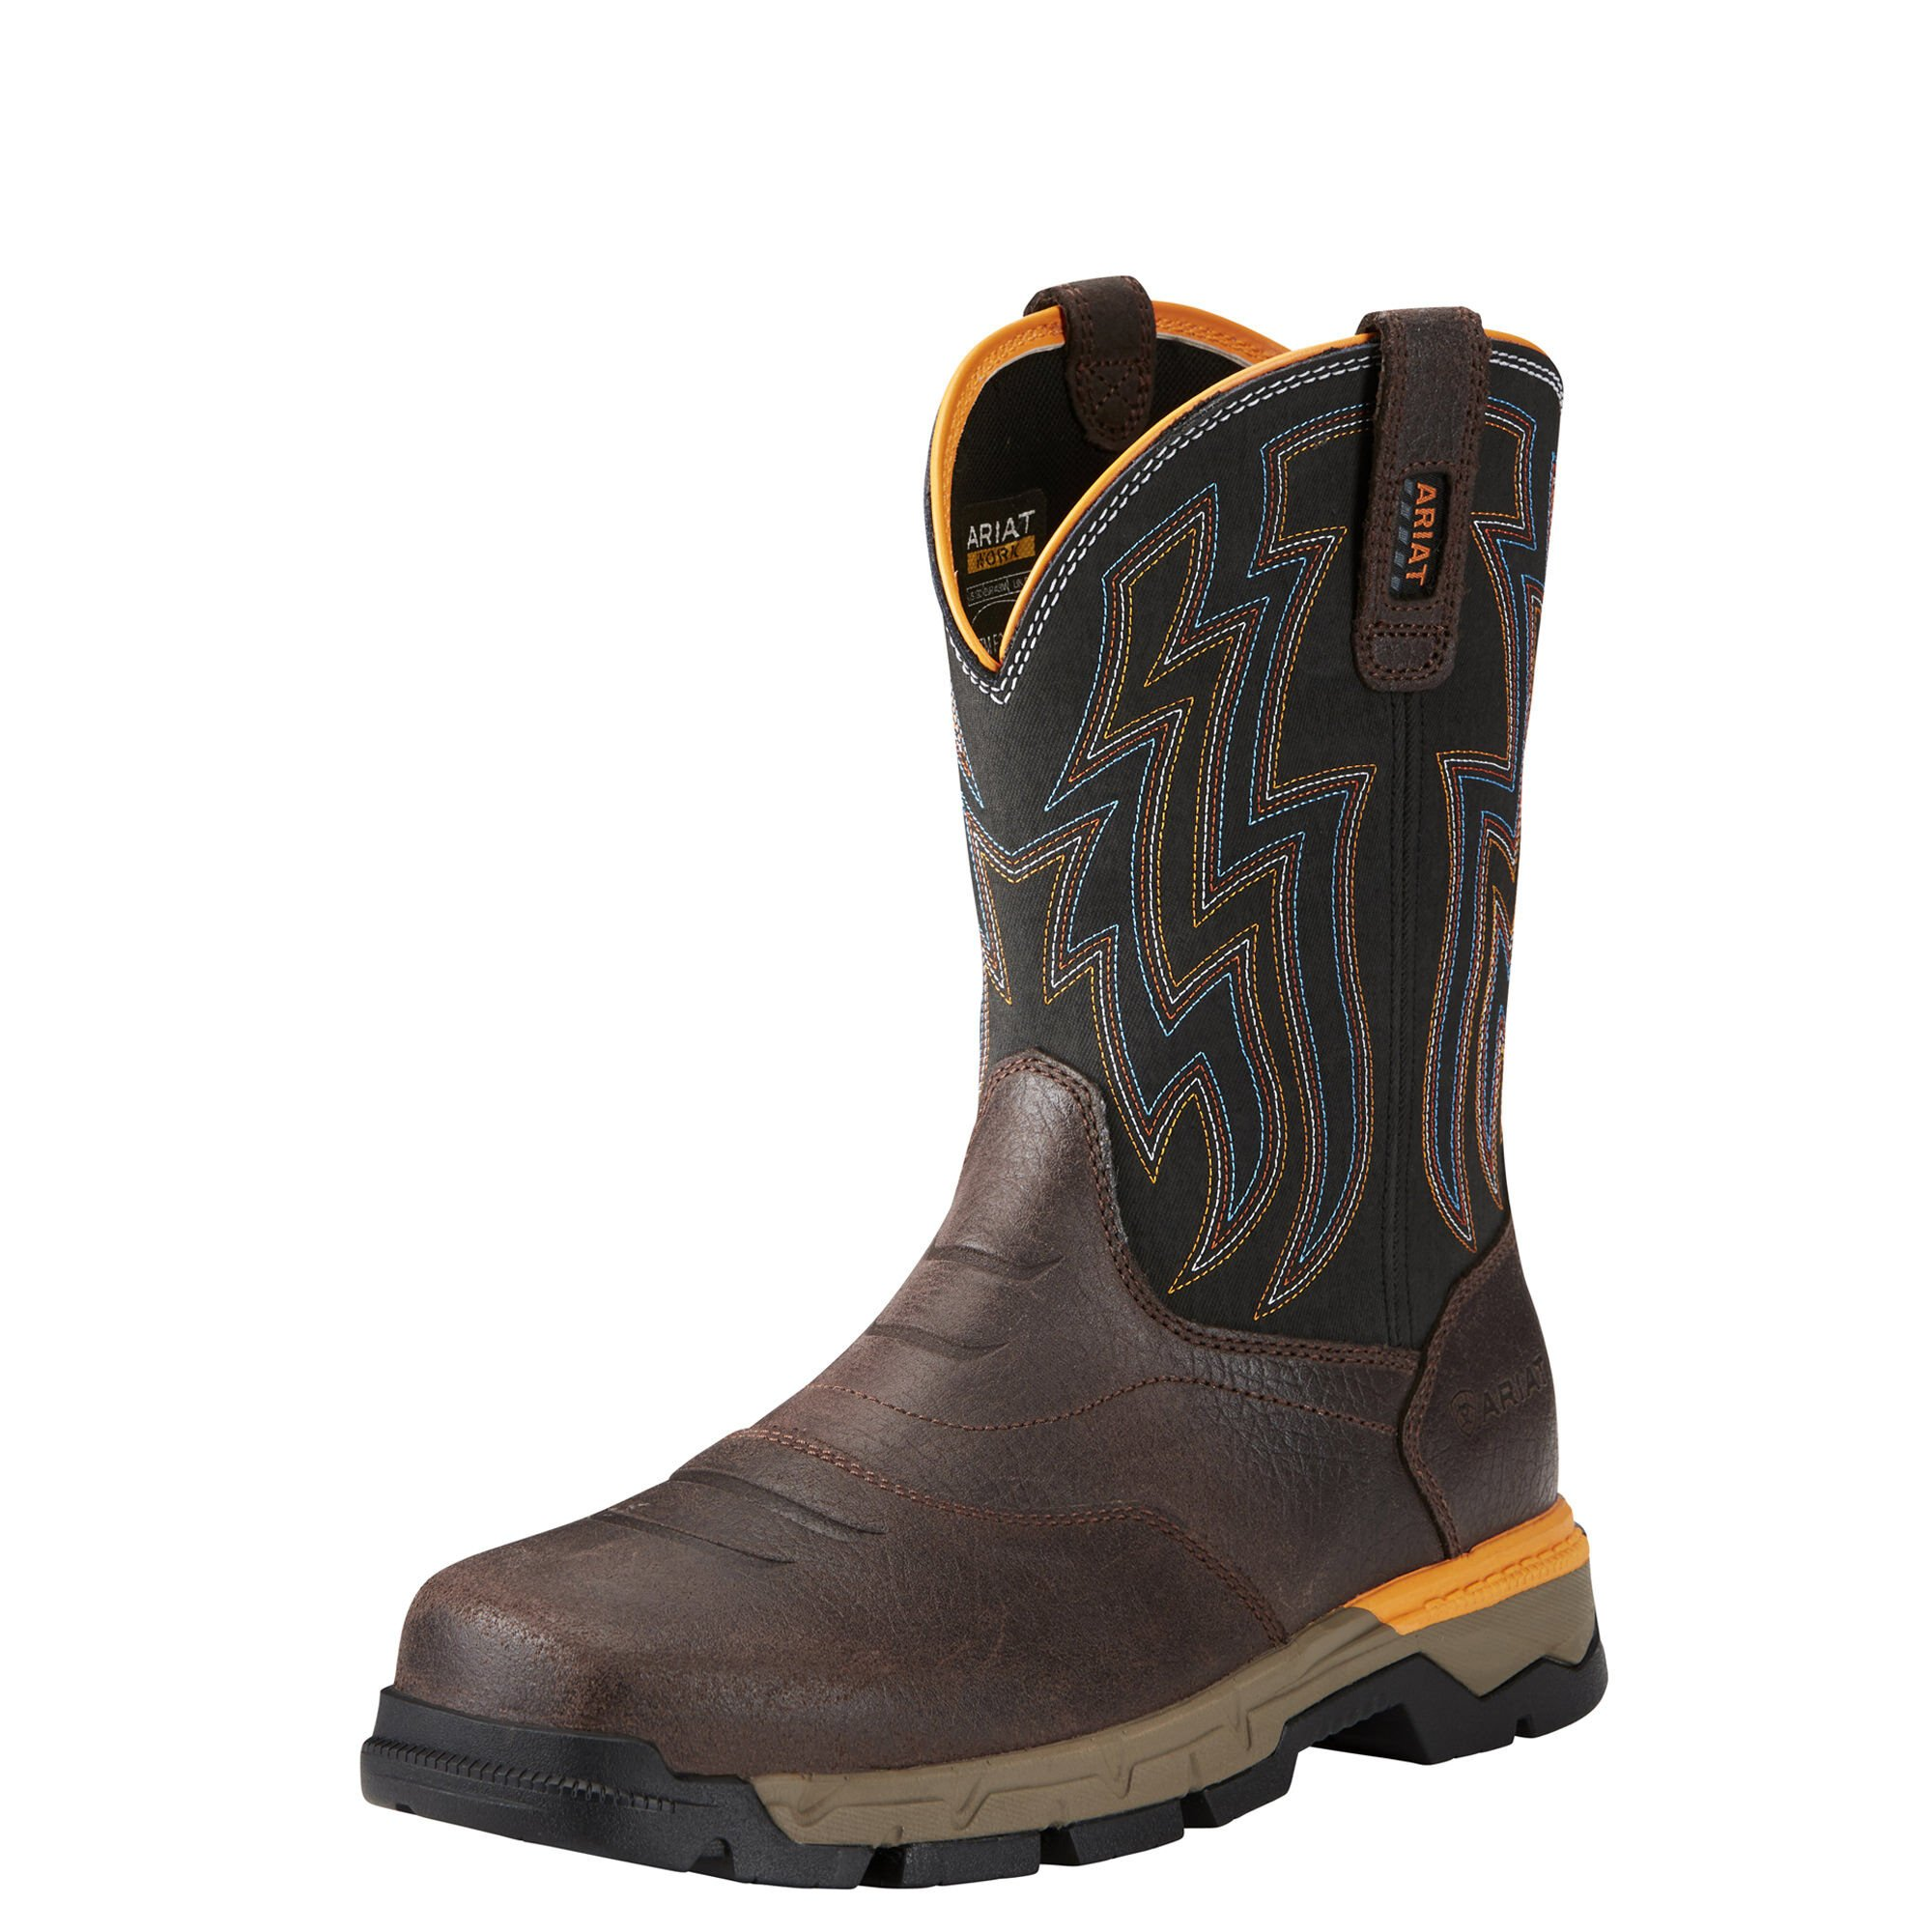 Rebar Flex Western Composite Toe Work Boot